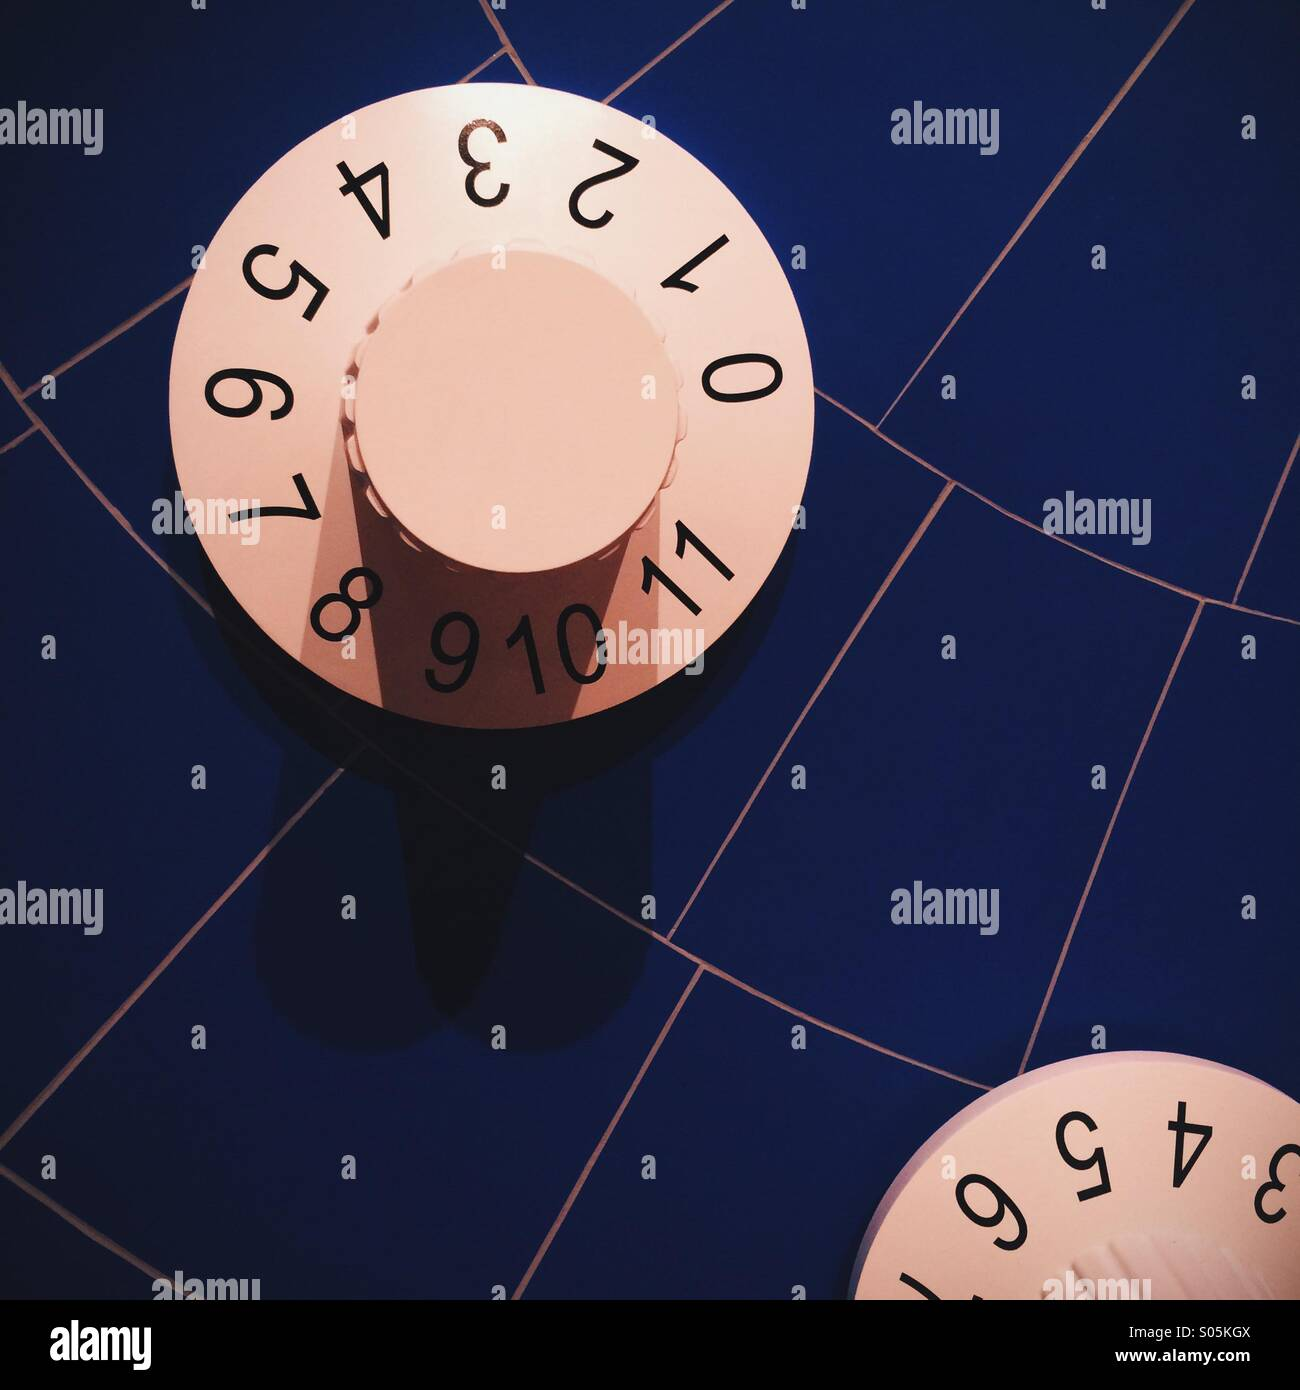 Large volume dials on a blue background - Stock Image